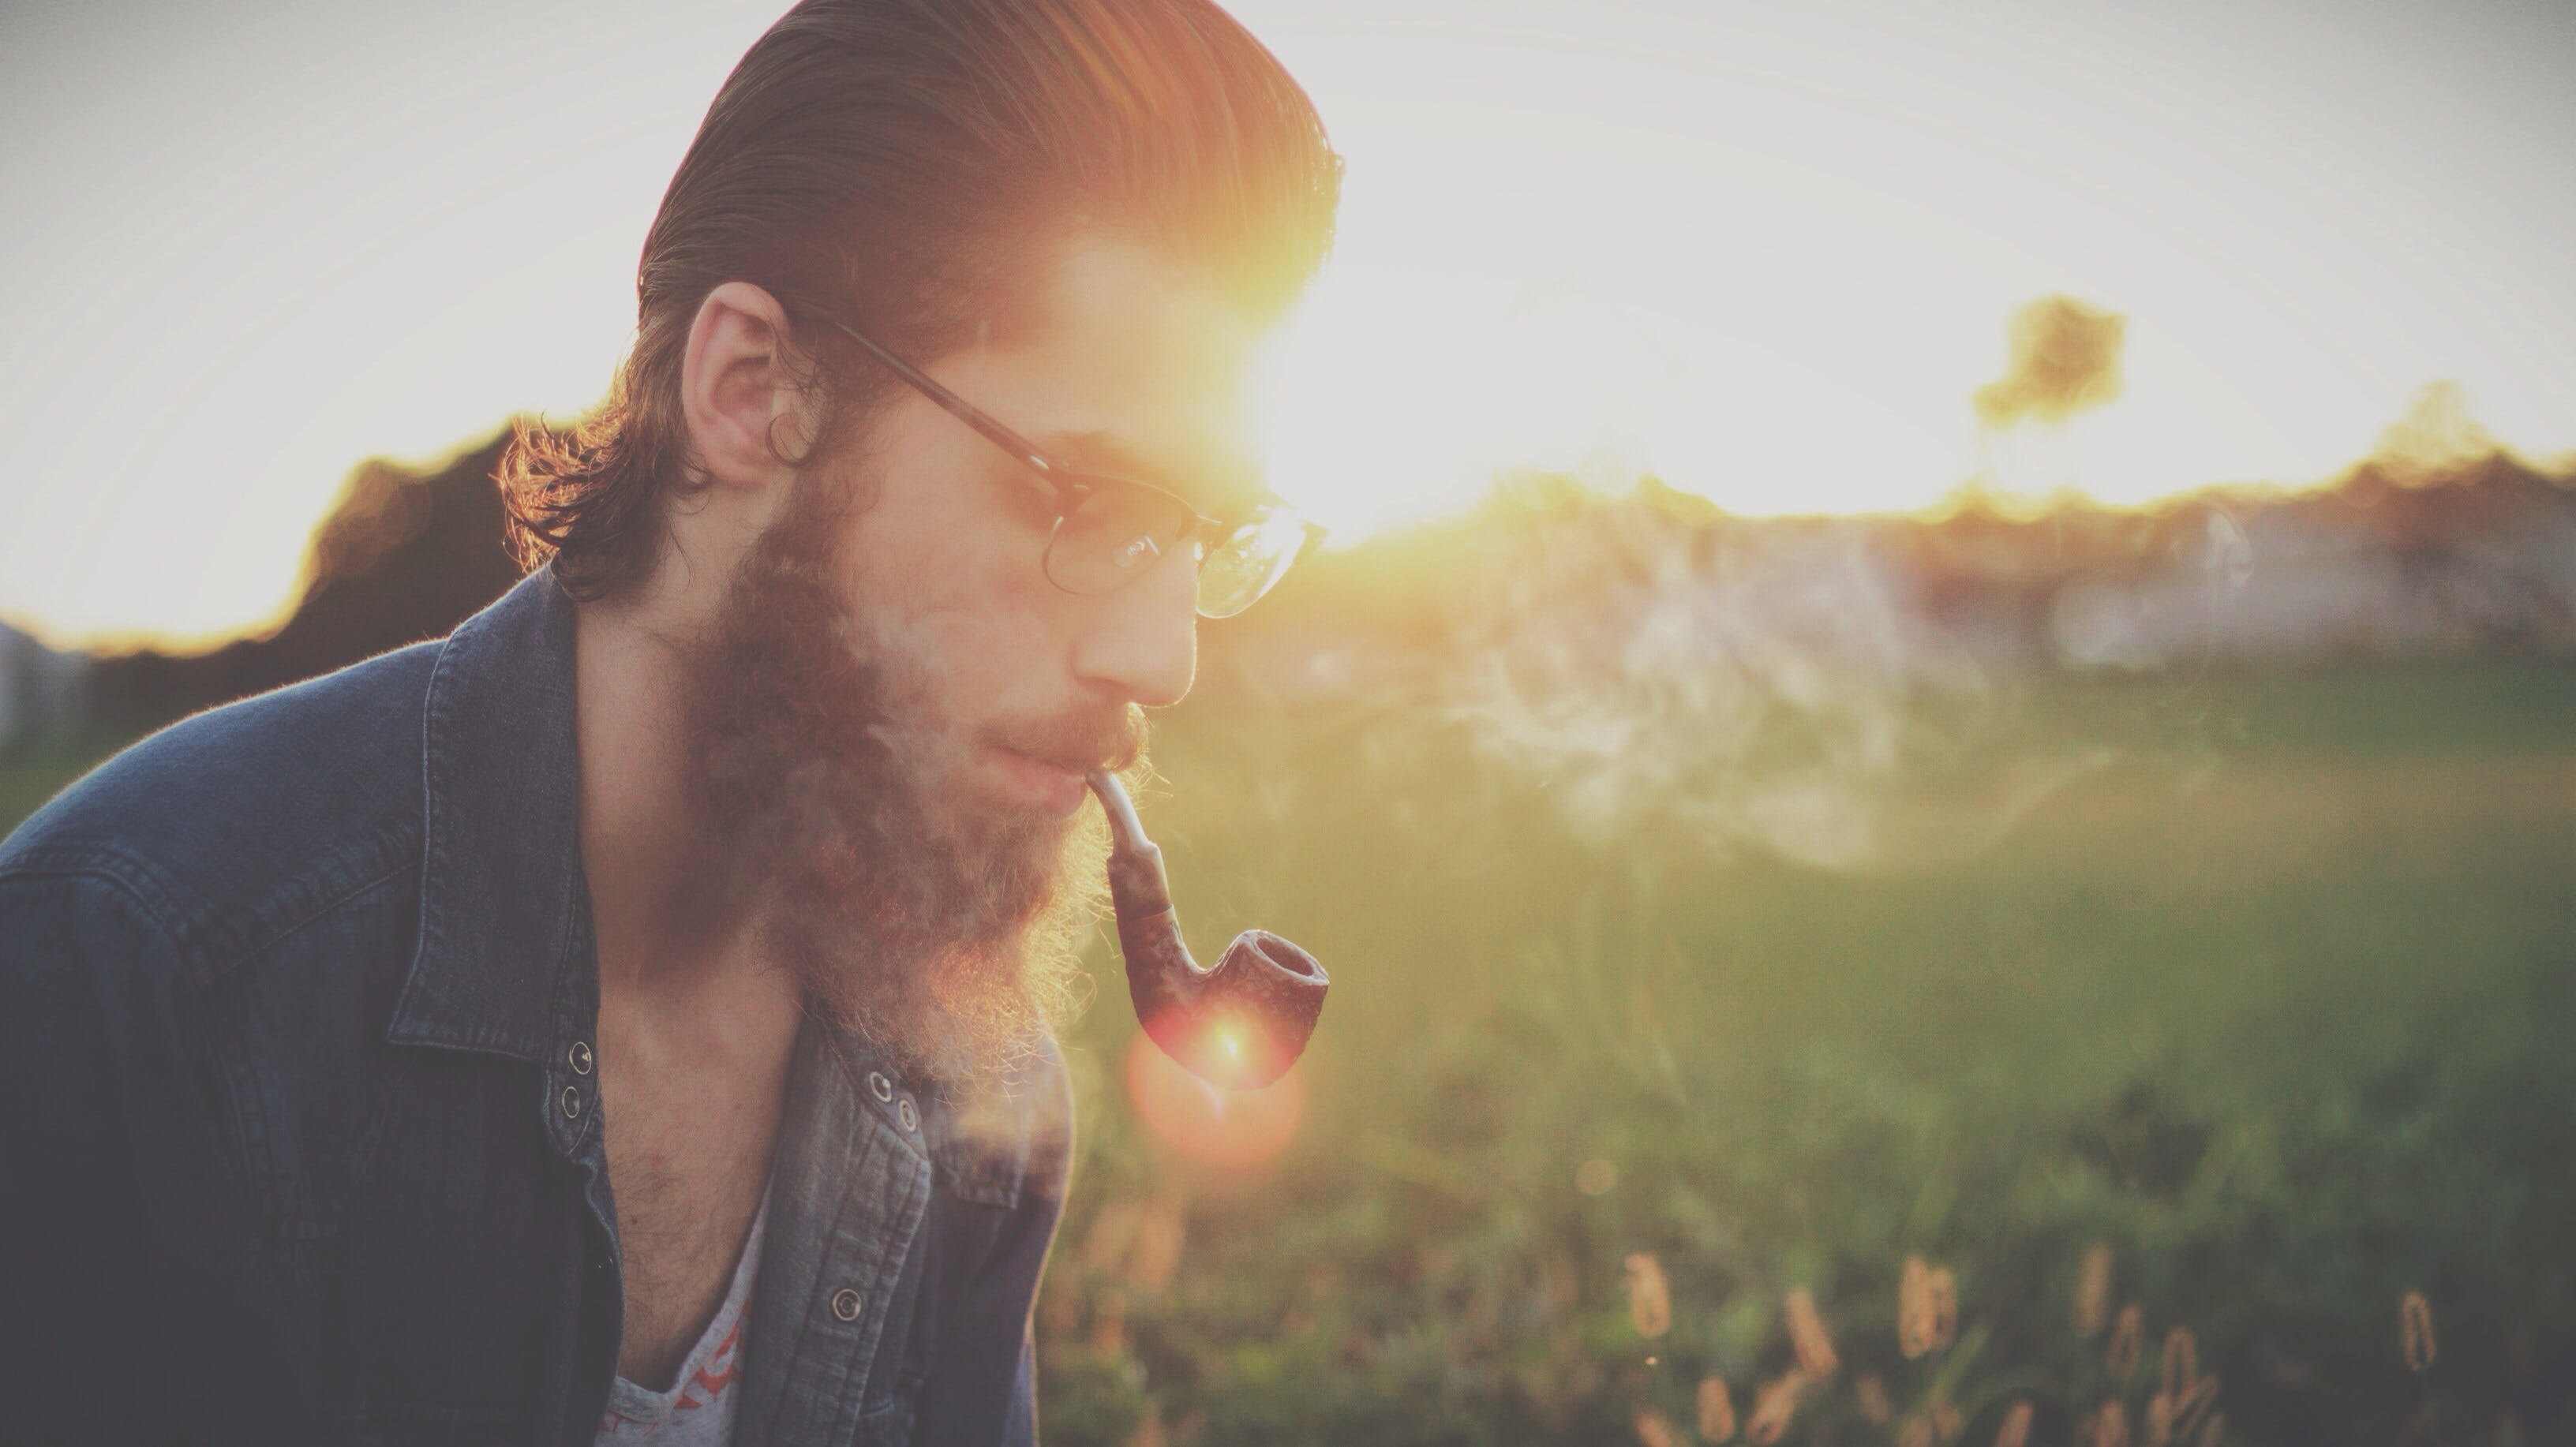 Selective Focus Photography of Man Smoking Using Tobacco Pipe